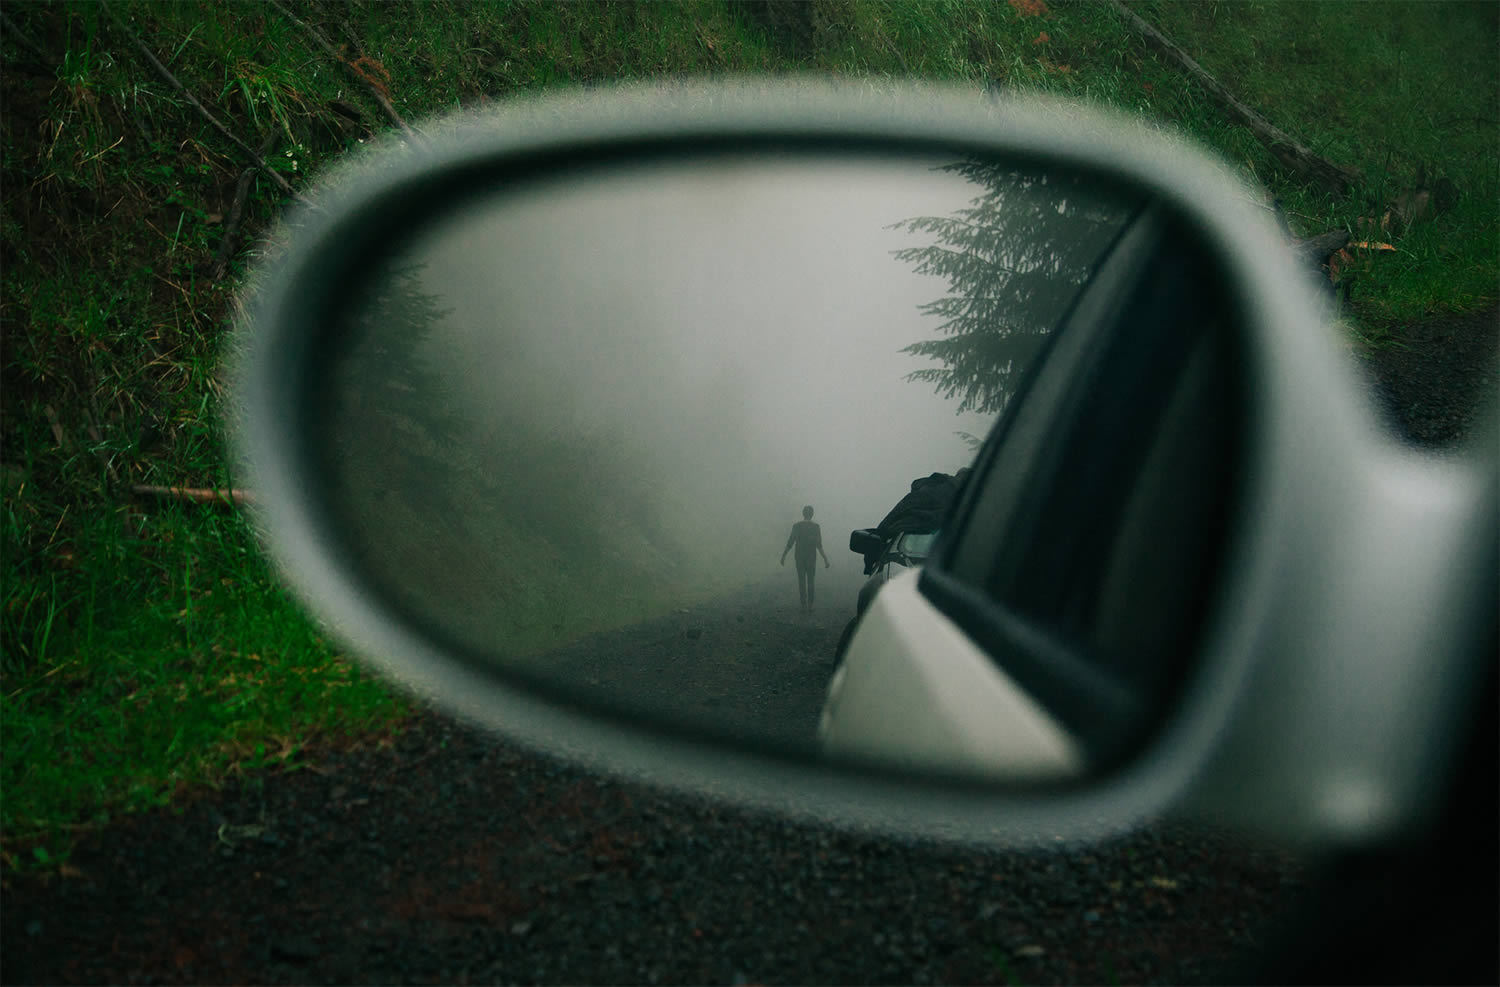 person reflected in car mirror, brendon burton